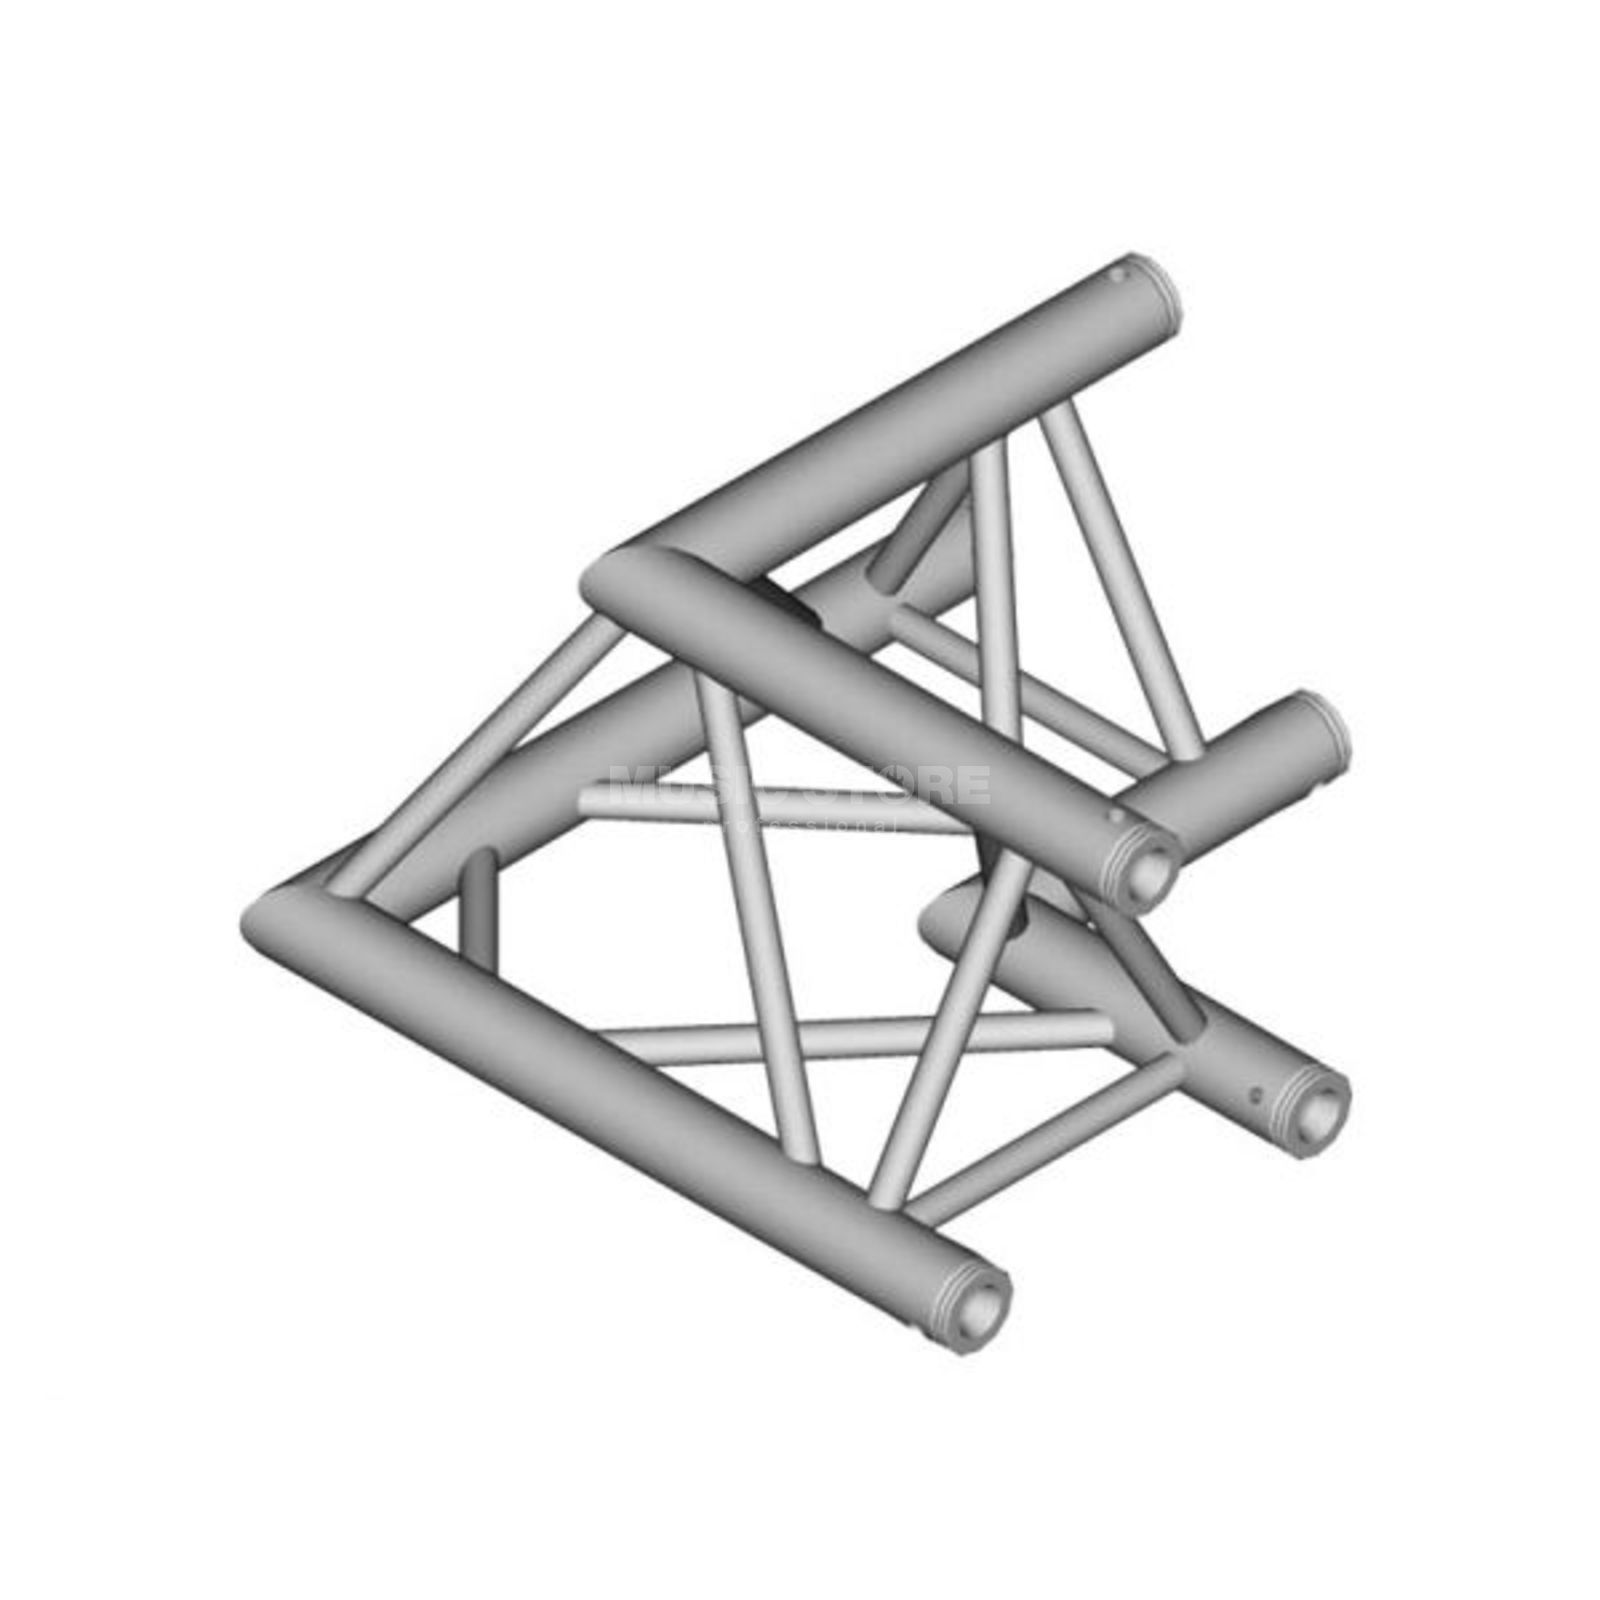 DURATRUSS DT 33-C21-L90, 3-Point Truss 90° Corner, 2-Way Produktbillede